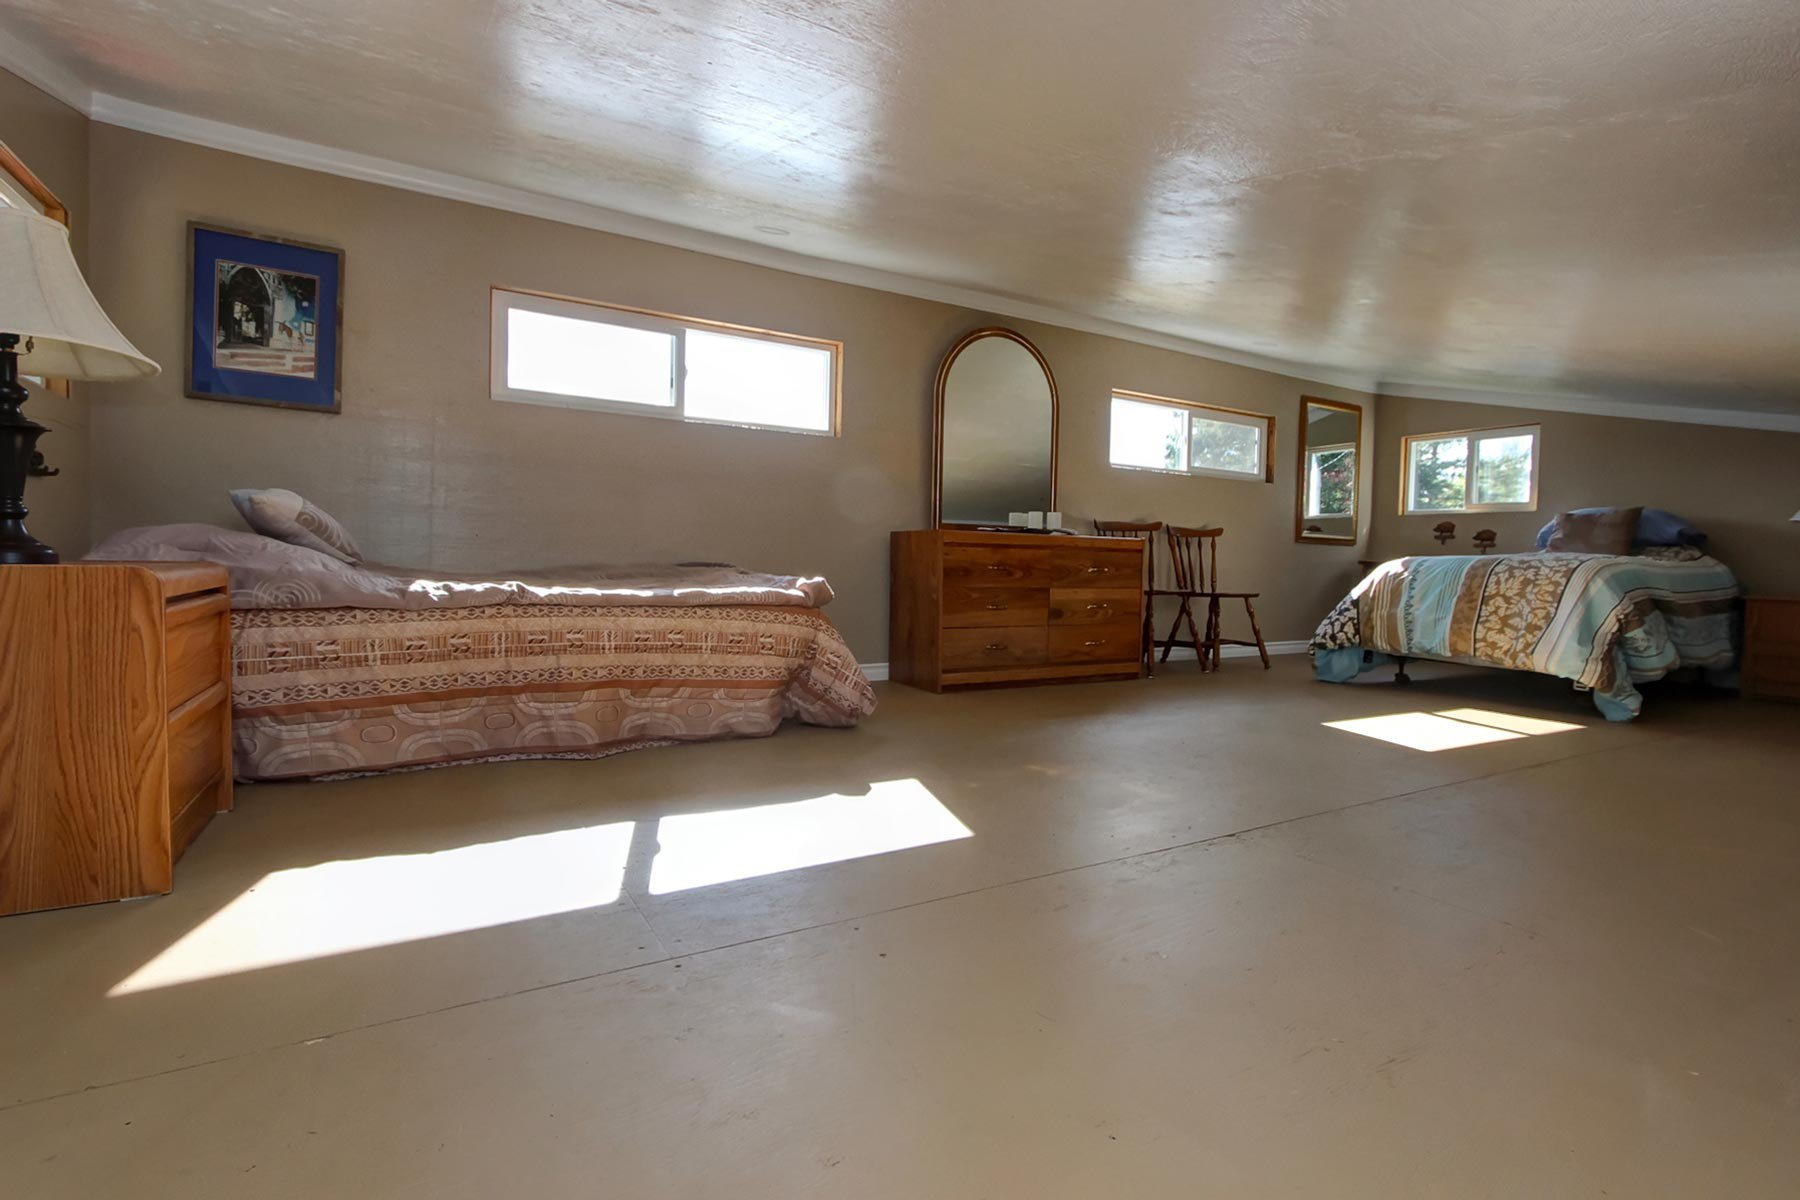 Photo 35: Photos: 3620 Hilliam Frontage Road in Scotch Creek: House for sale : MLS®# 10217240